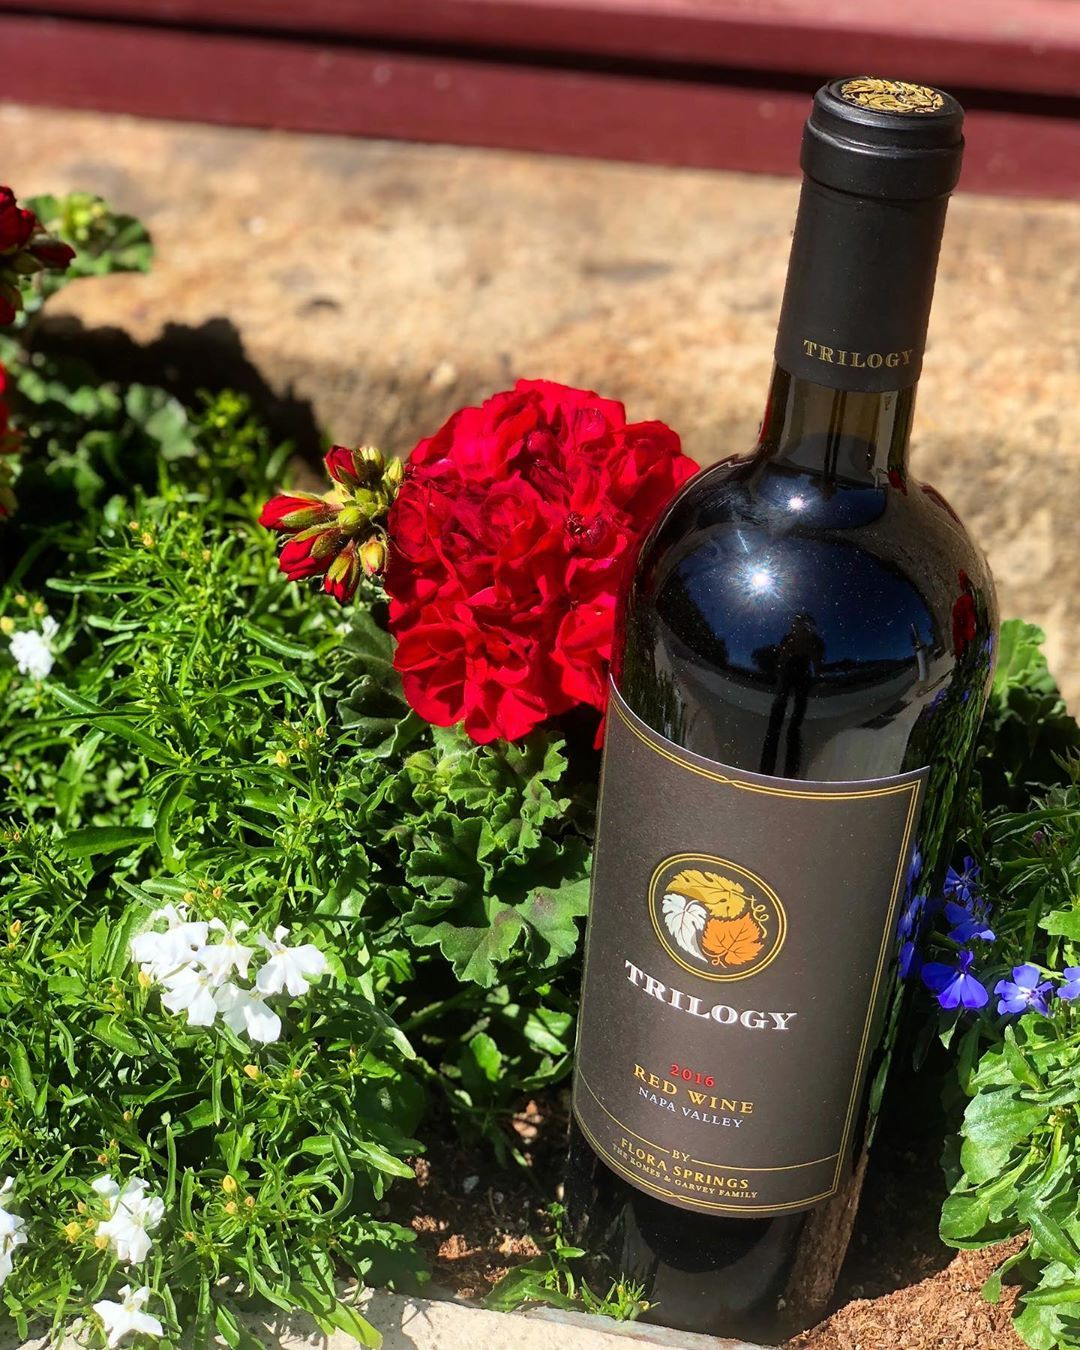 We Hope You Re Enjoying The Sunshine With Friends And Family This Memorialday Weekend With A Glass Of Wine Of Cours Enjoy The Sunshine Wine Napa Valley Wine